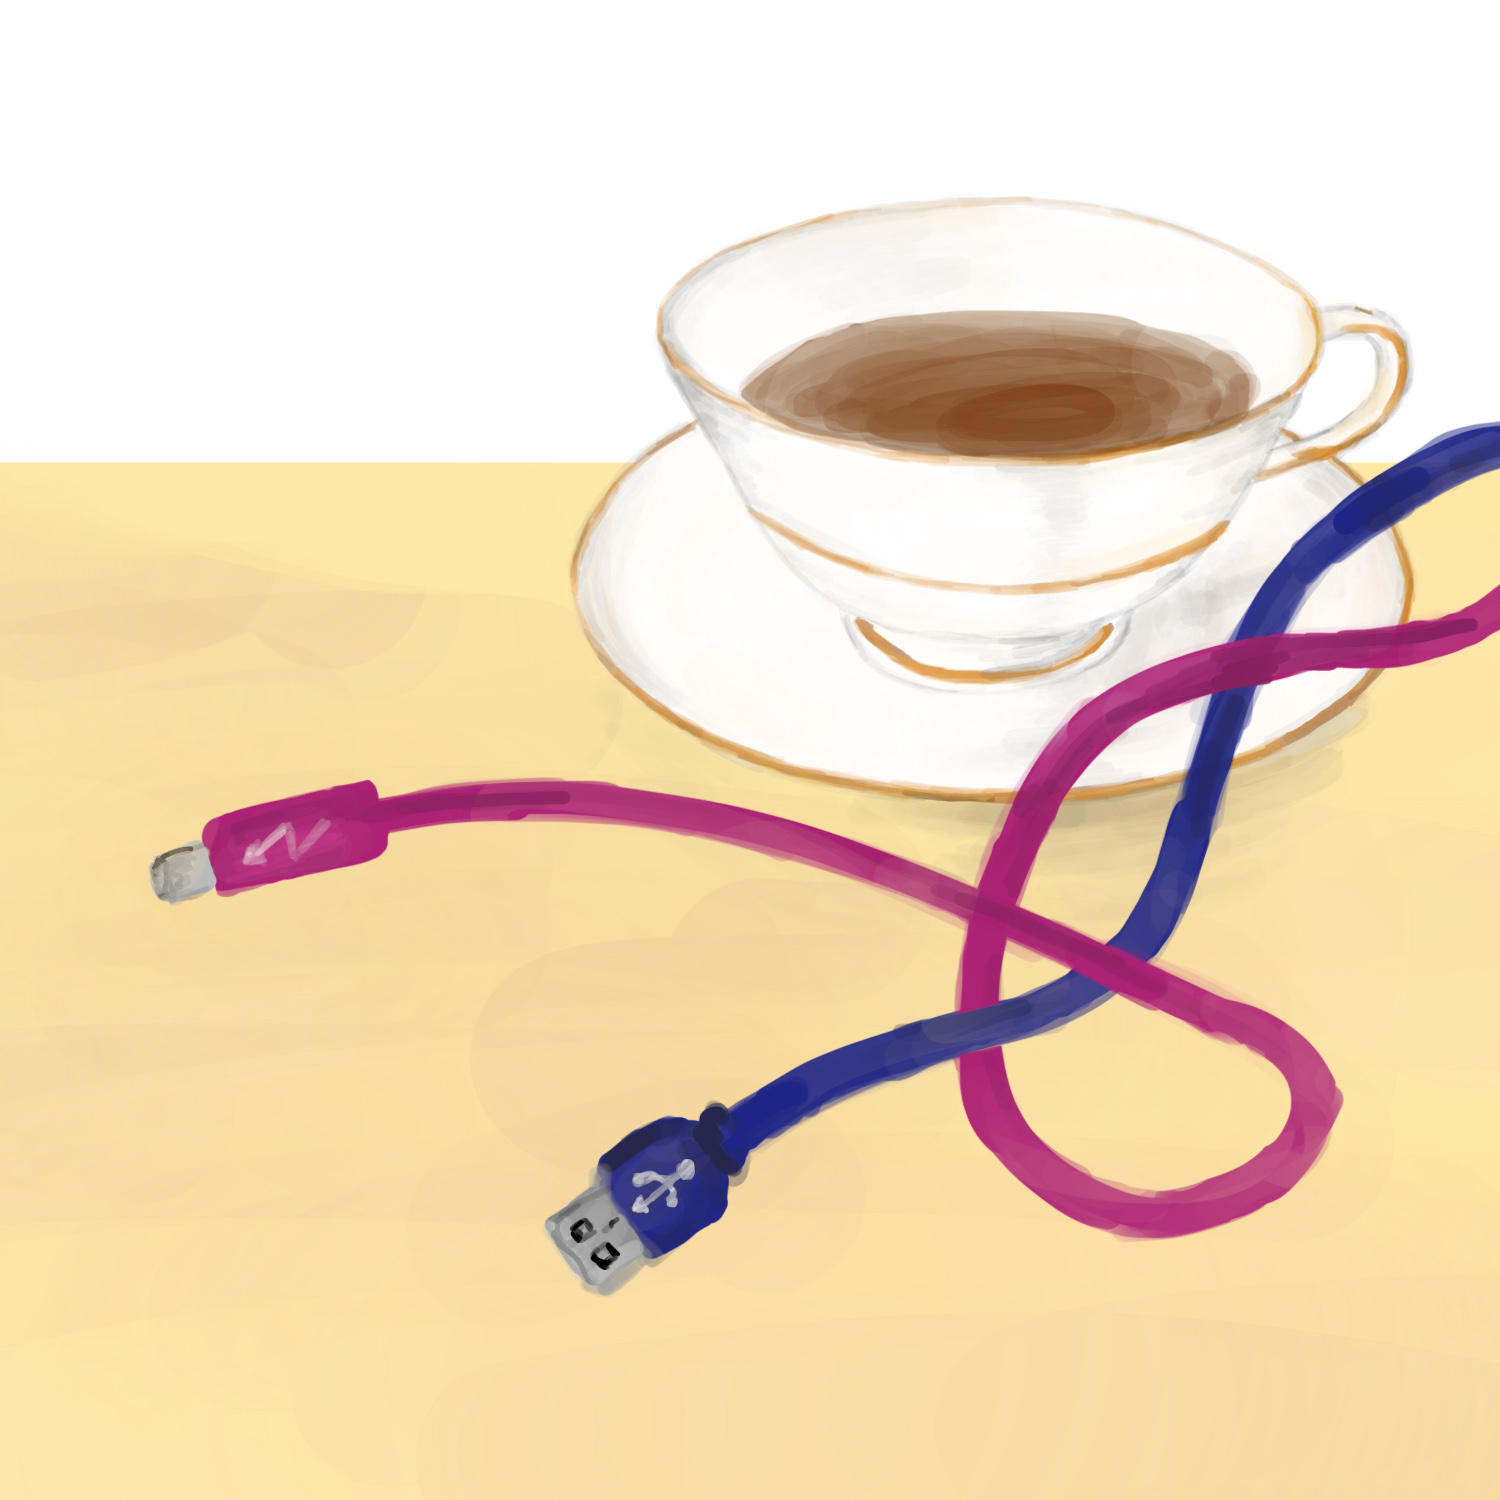 A teacup, a USB cable, and a Thunderbolt cable